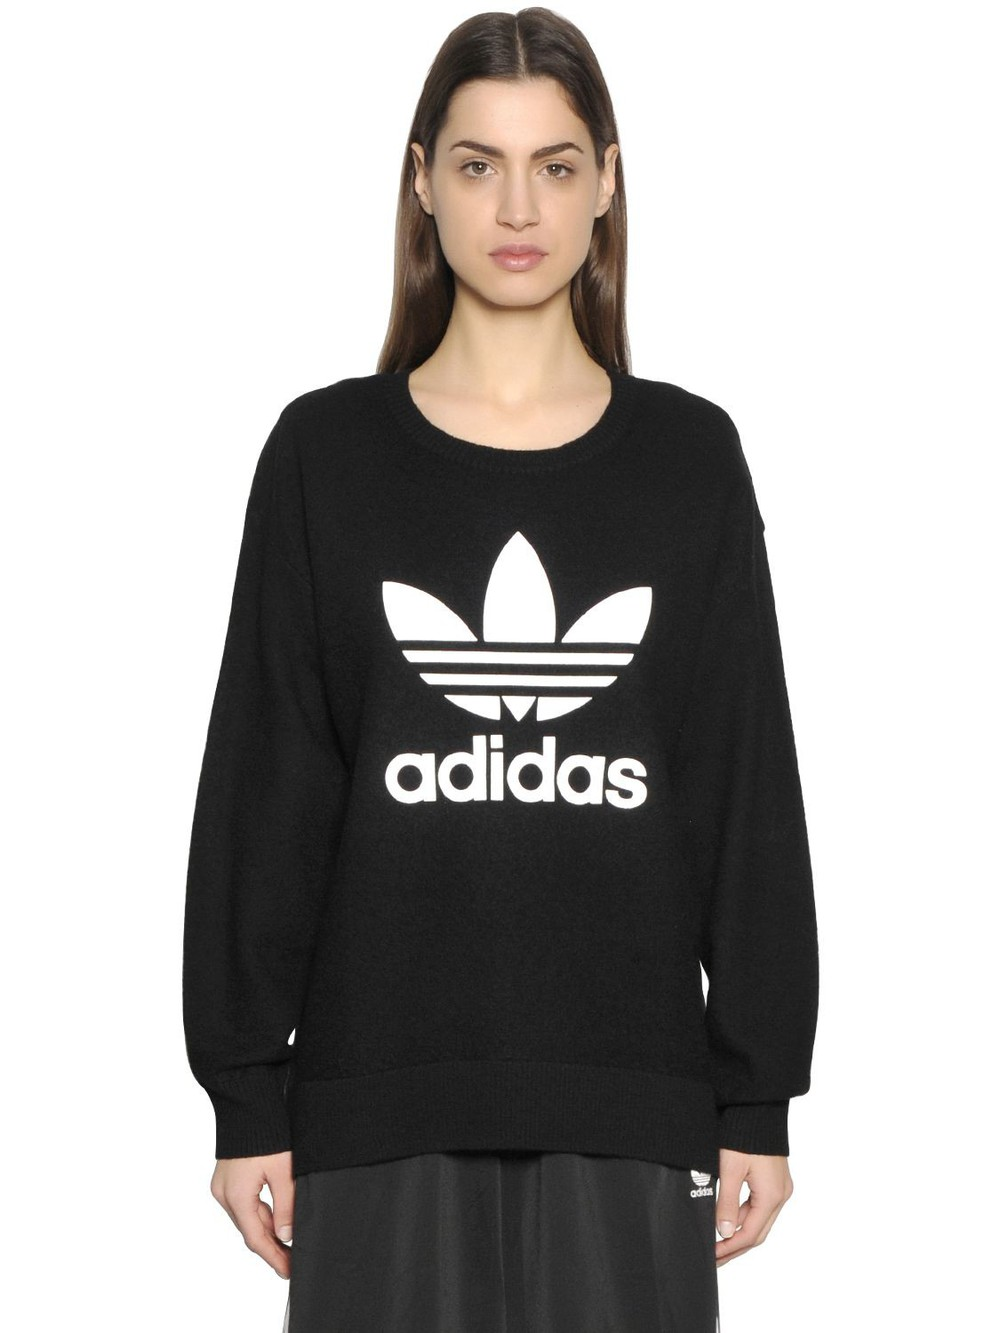 Adidas Originals three stripes printed sweatshirt, Women's, Size ...